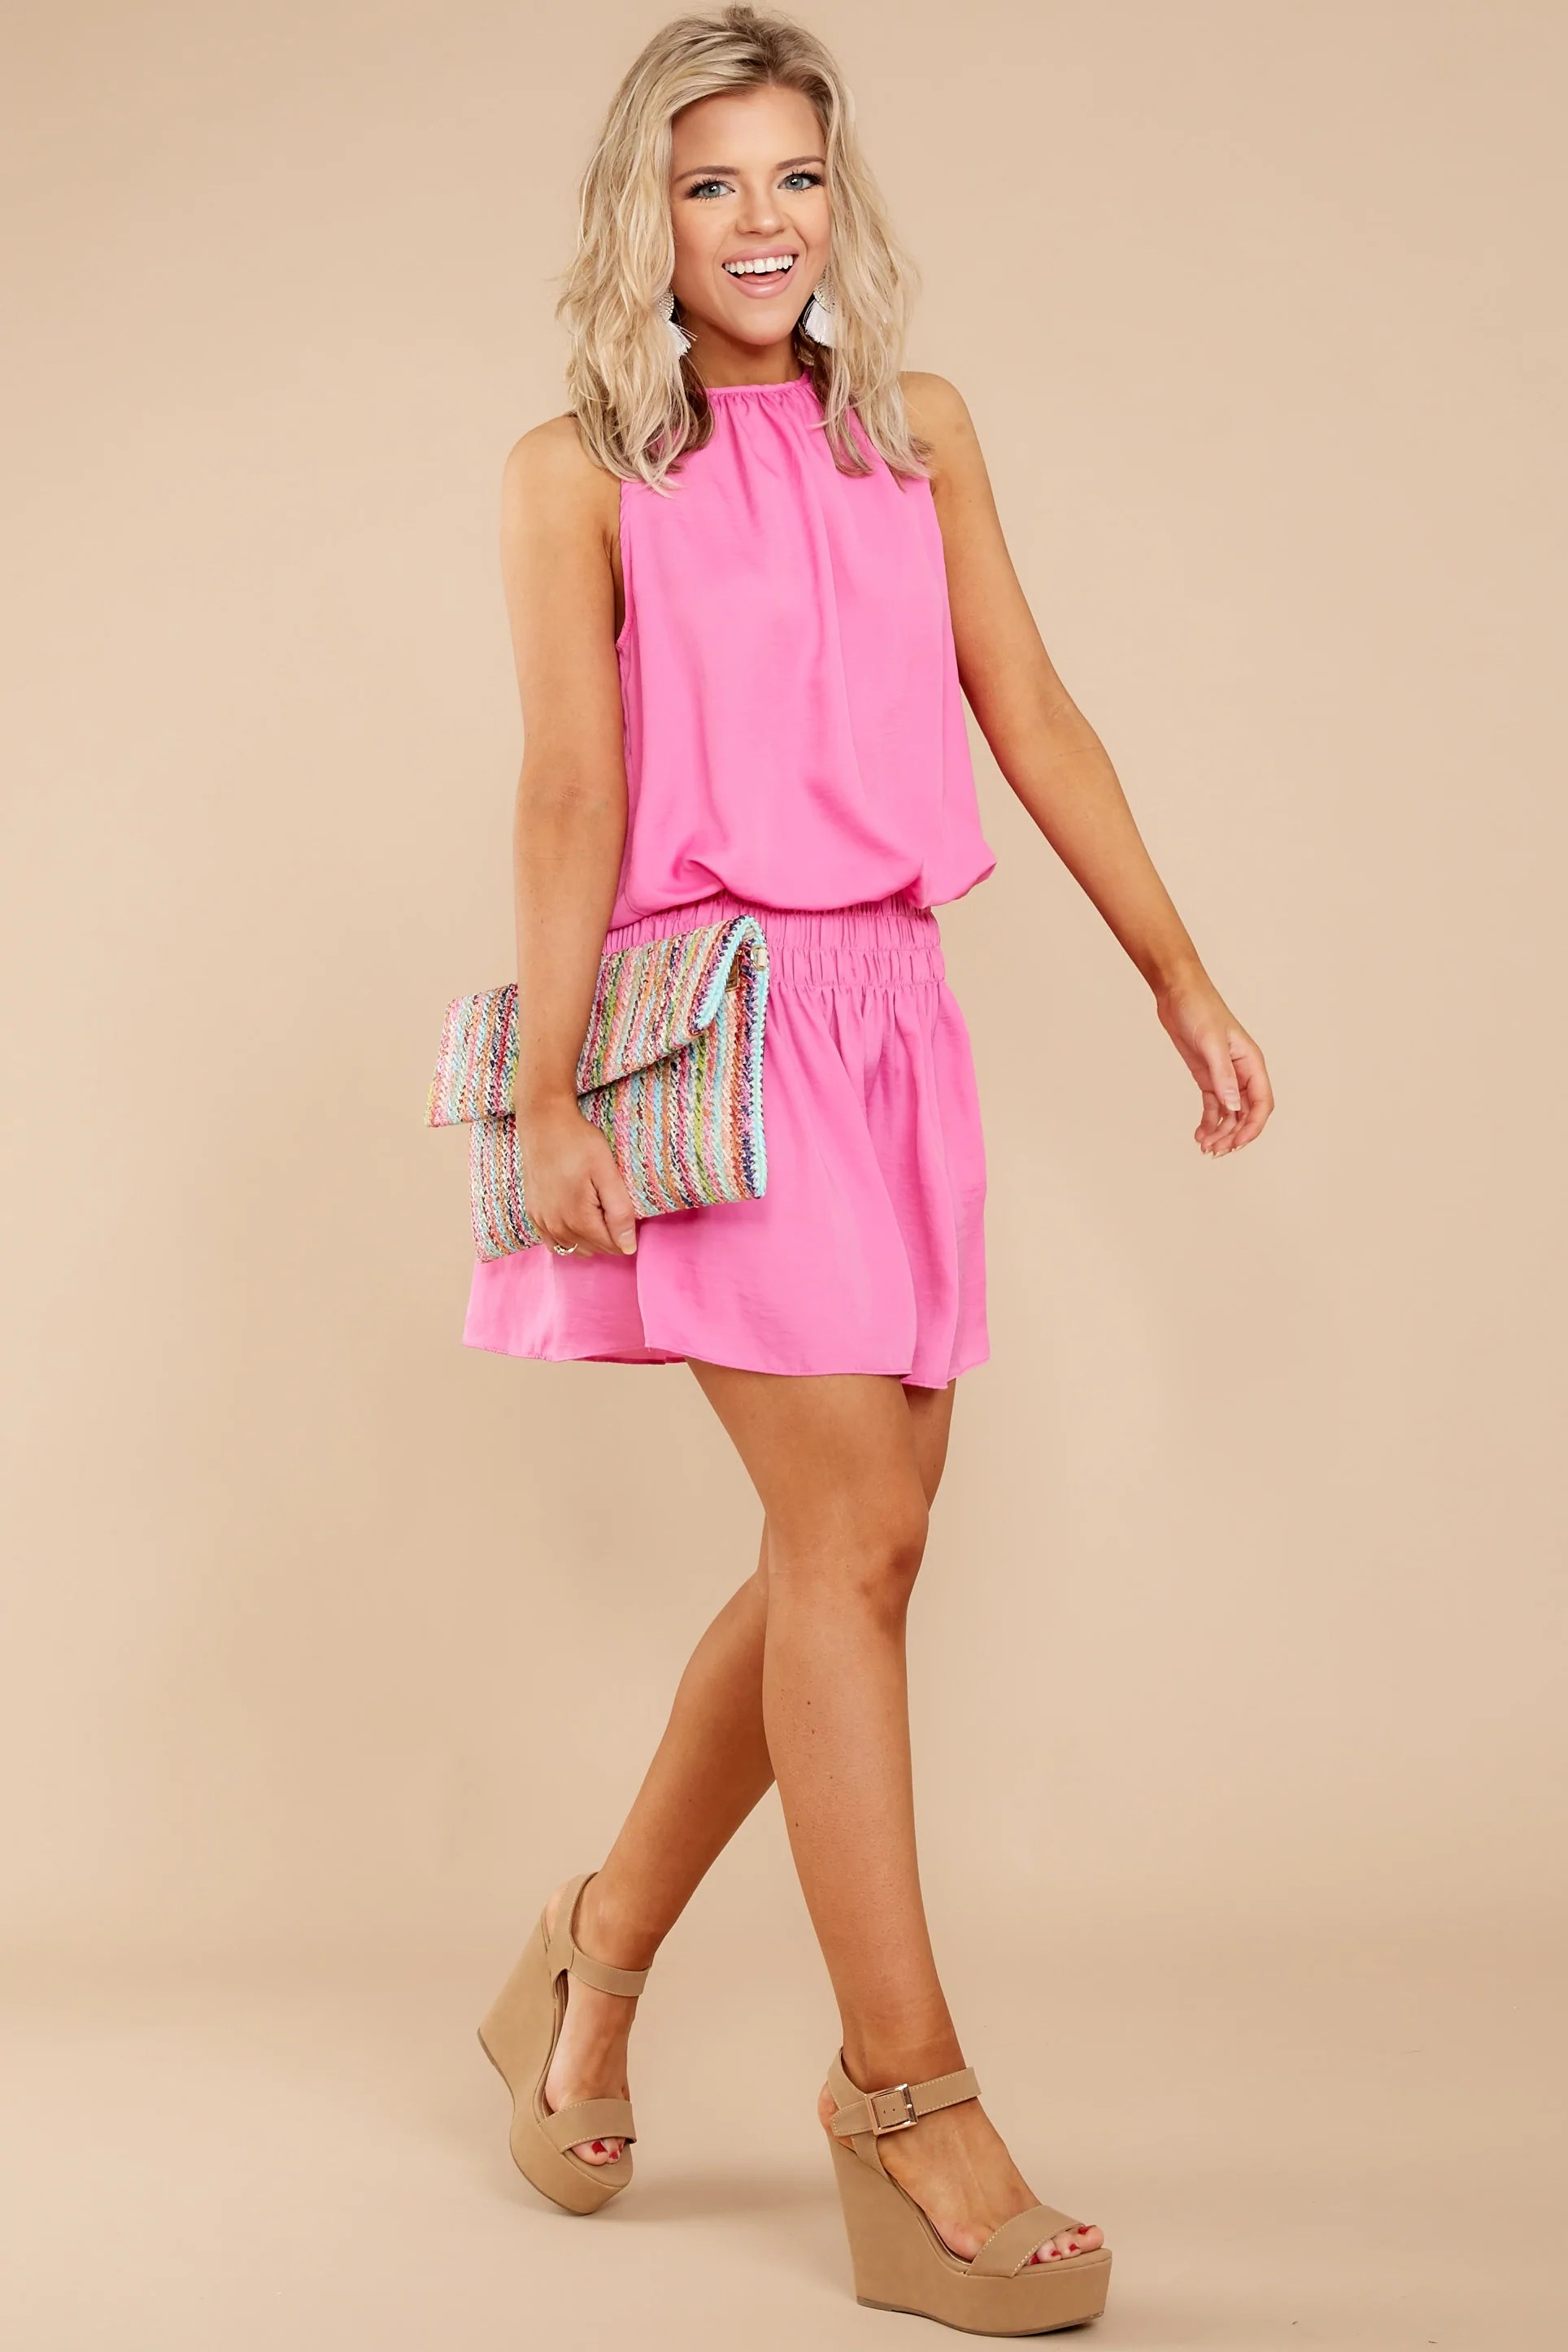 Cute Hot Pink Dress - Trendy 38.00 Red